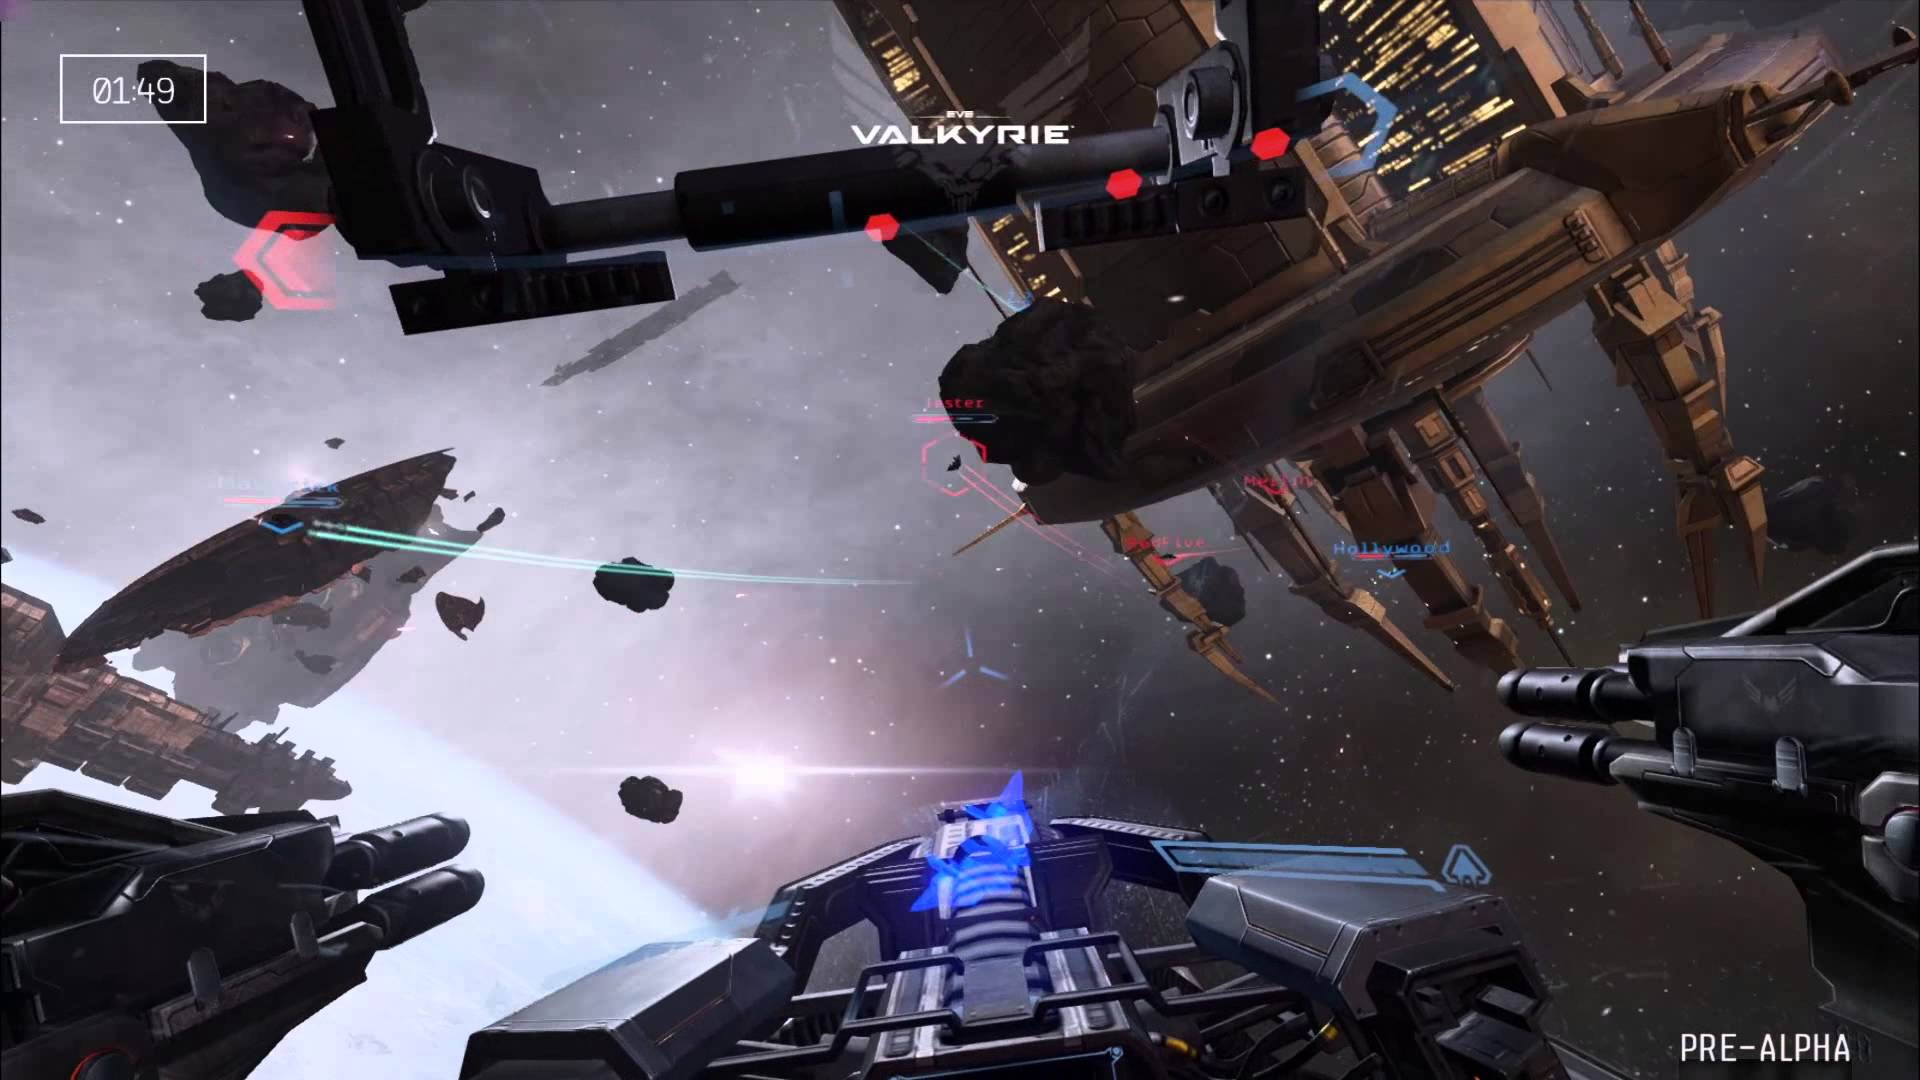 Gameplay-Trailer von der E3: EVE VALKYRIE